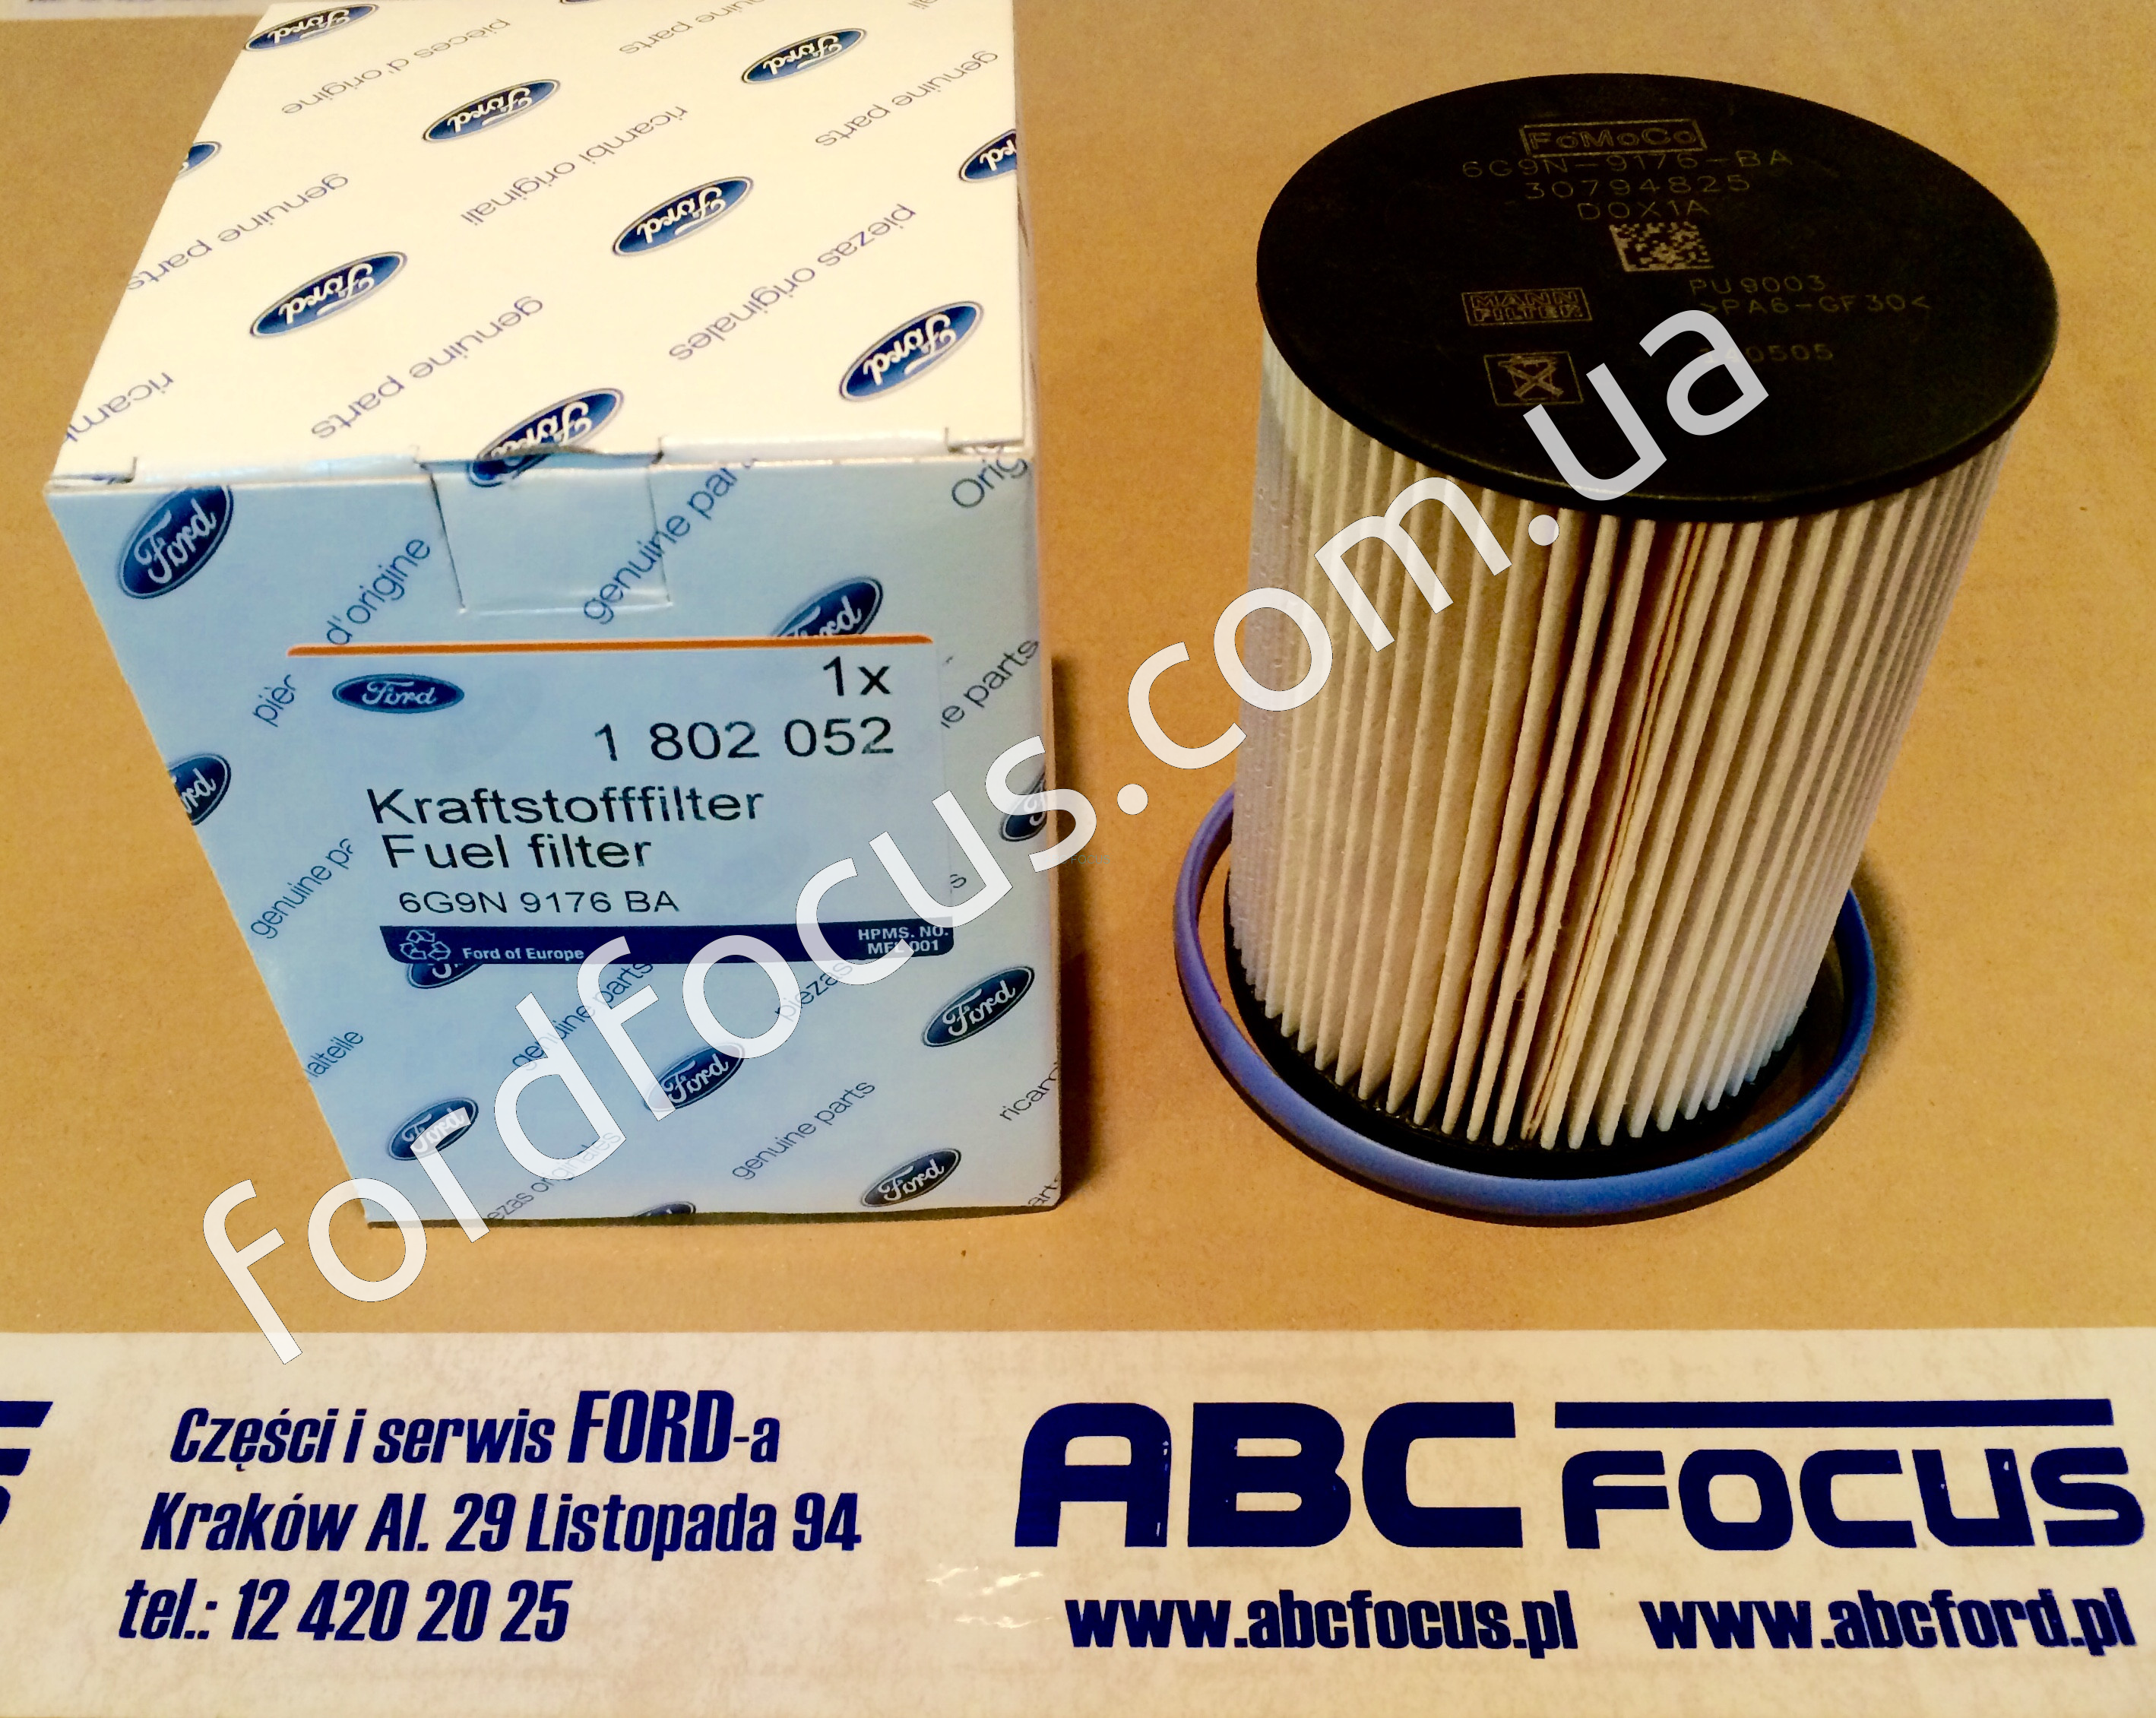 1802052 Filter Fuel Ford Mondeo Focus